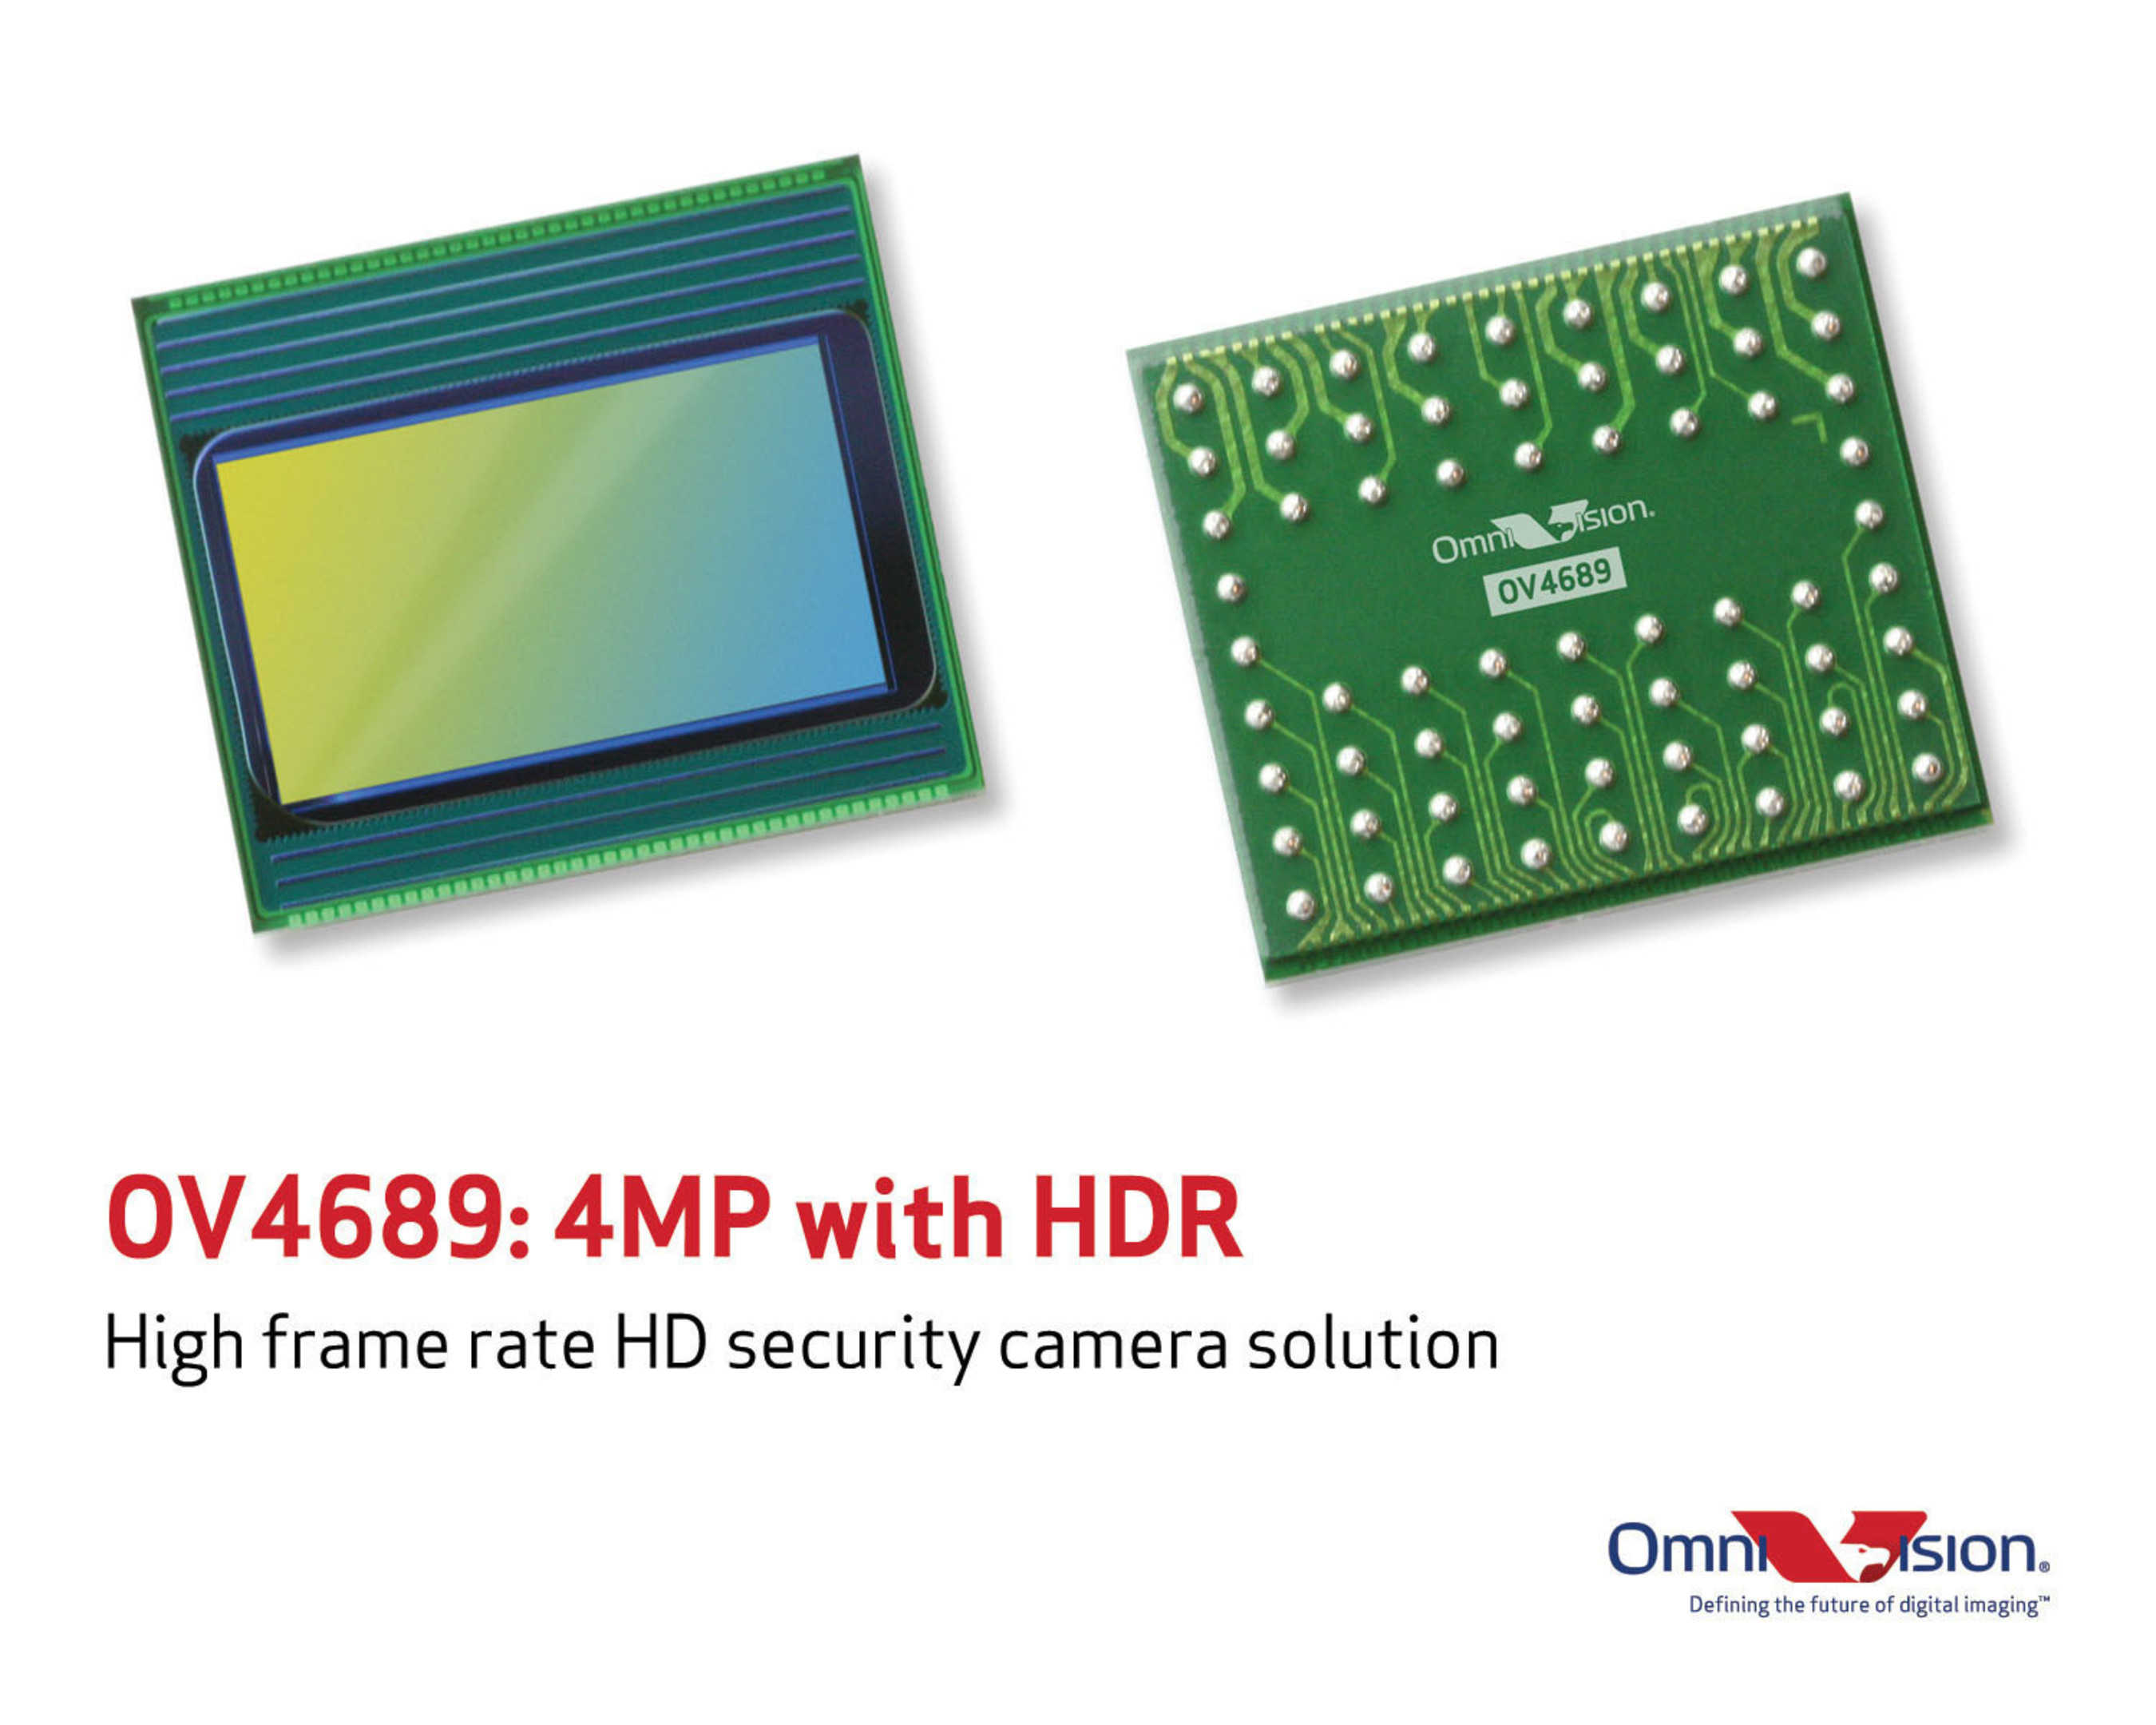 OV4689: High frame rate HD security camera solution.  (PRNewsFoto/OmniVision Technologies, Inc.)